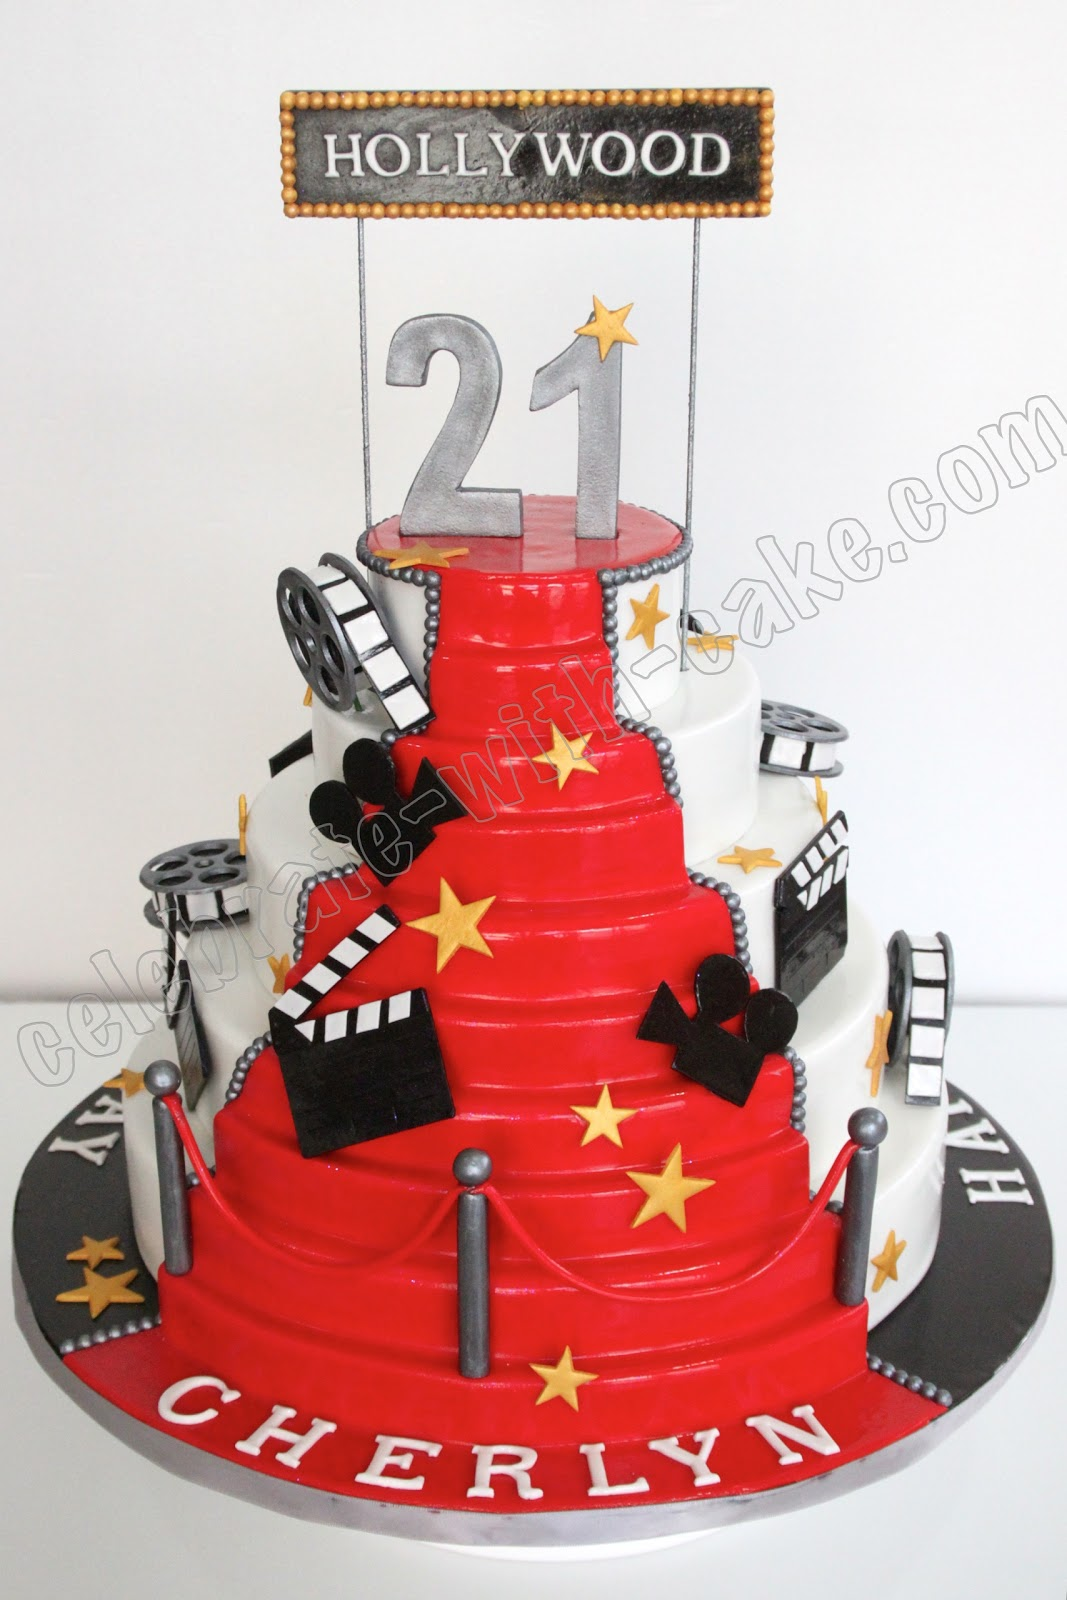 Celebrate With Cake Hollywood Themed Cake